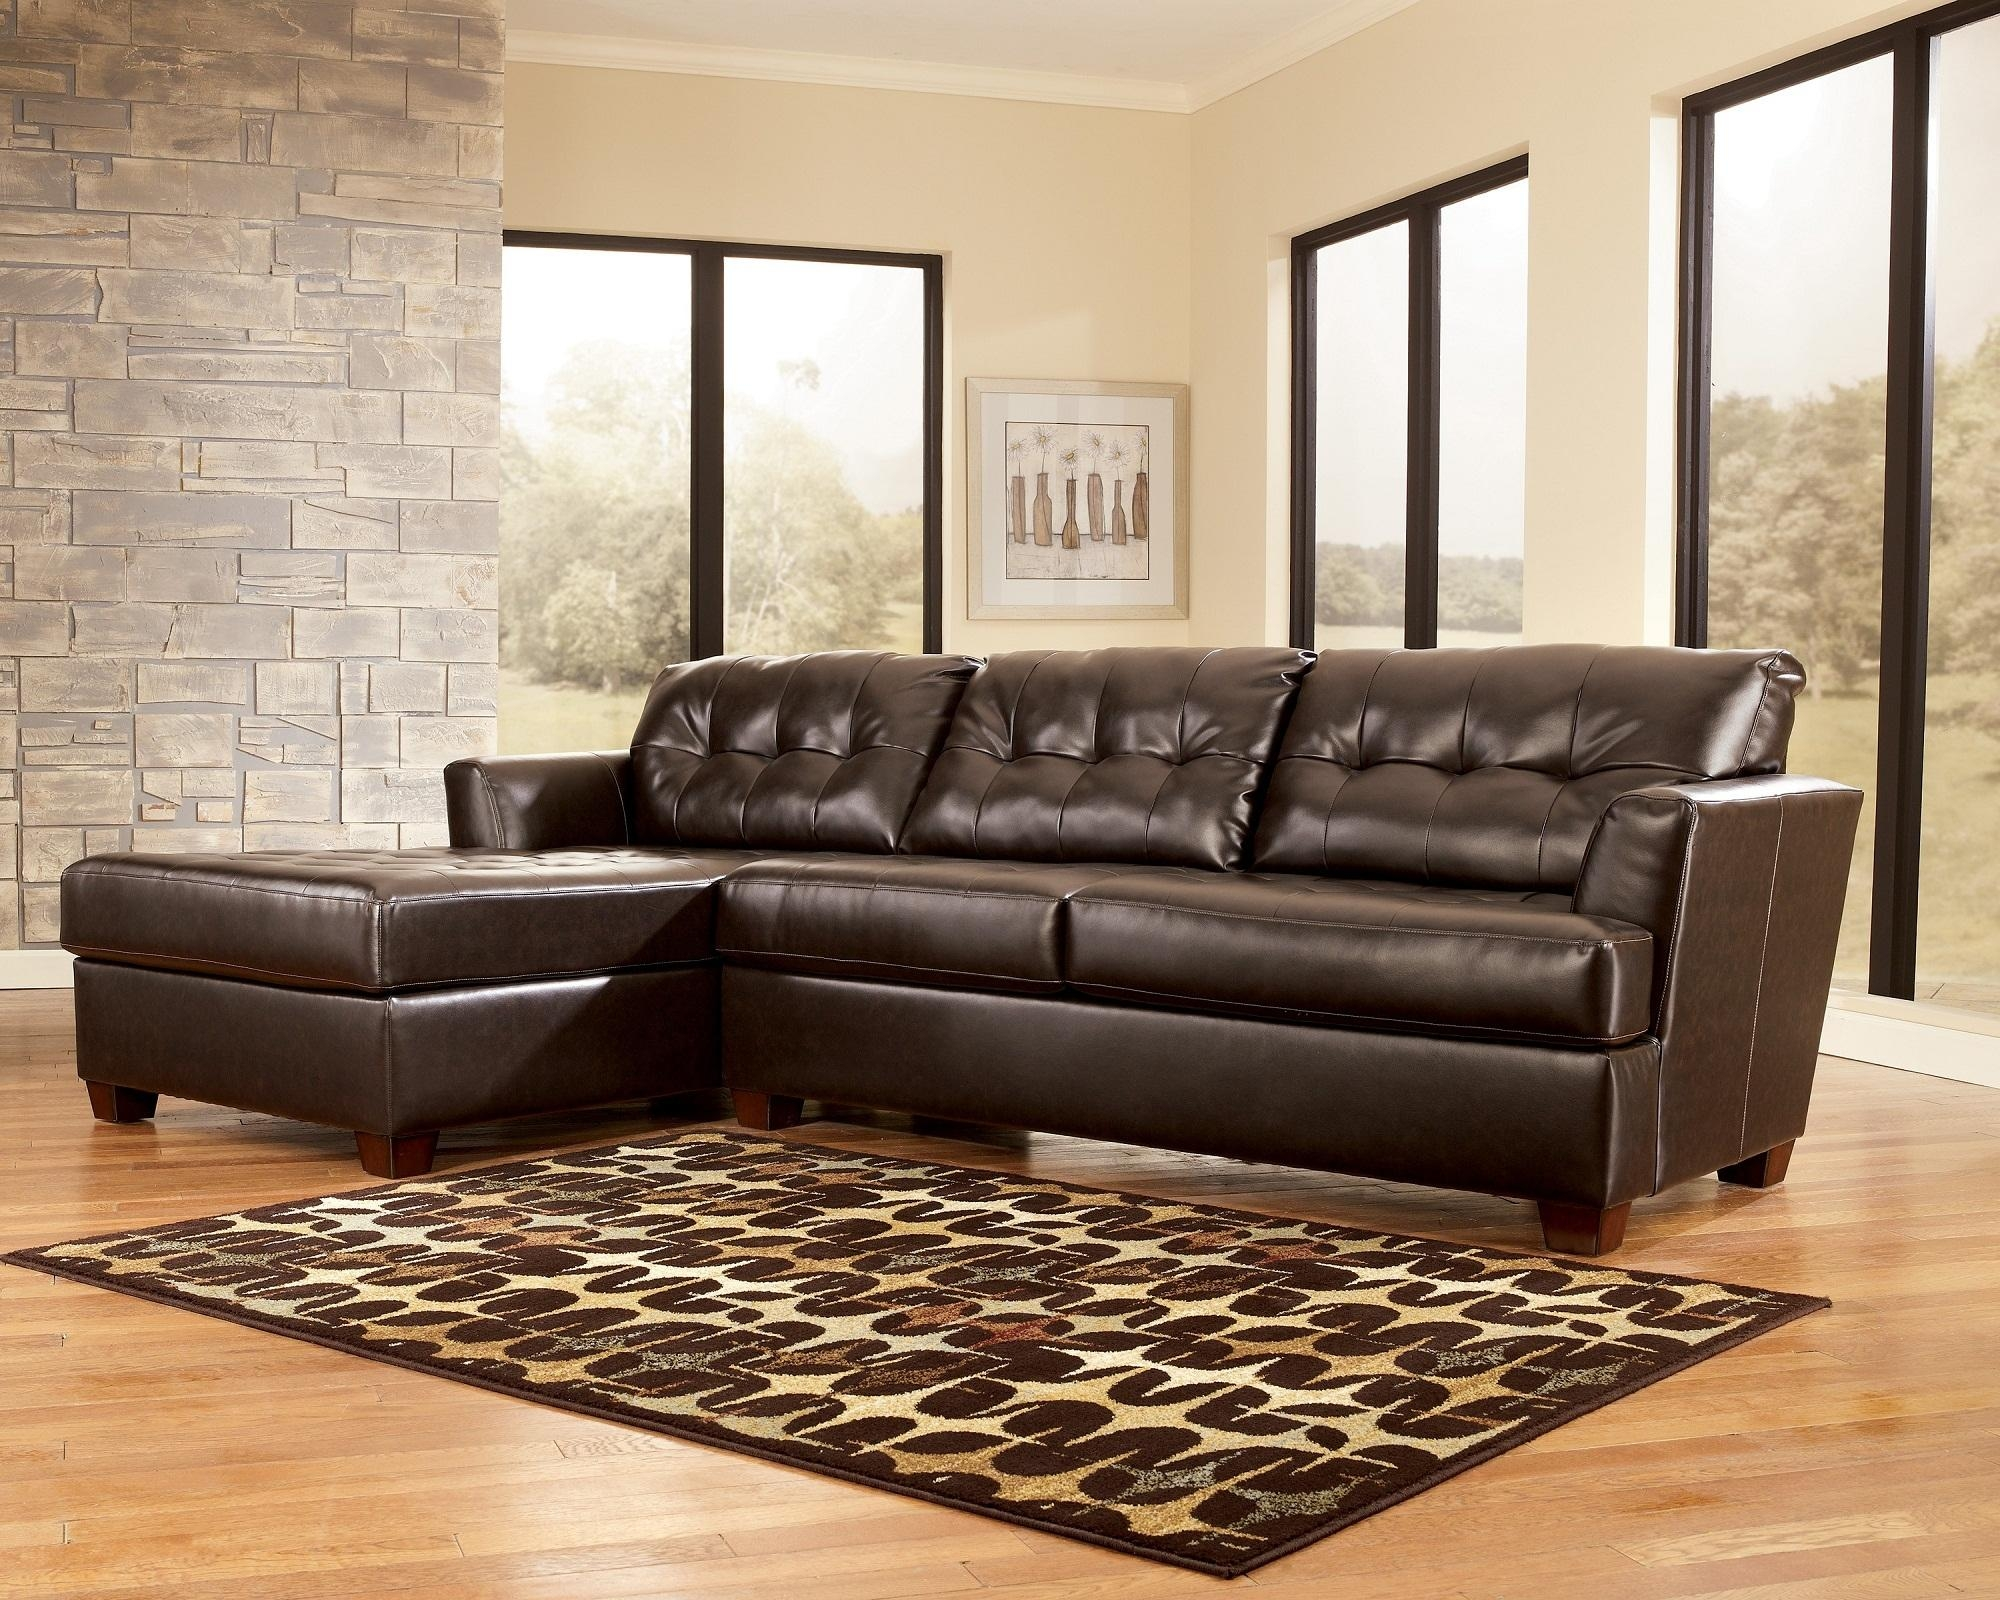 9 Best Contemporary Leather Sectional Sleeper Sofa With Chaise regarding Black Leather Sectional Sleeper Sofas